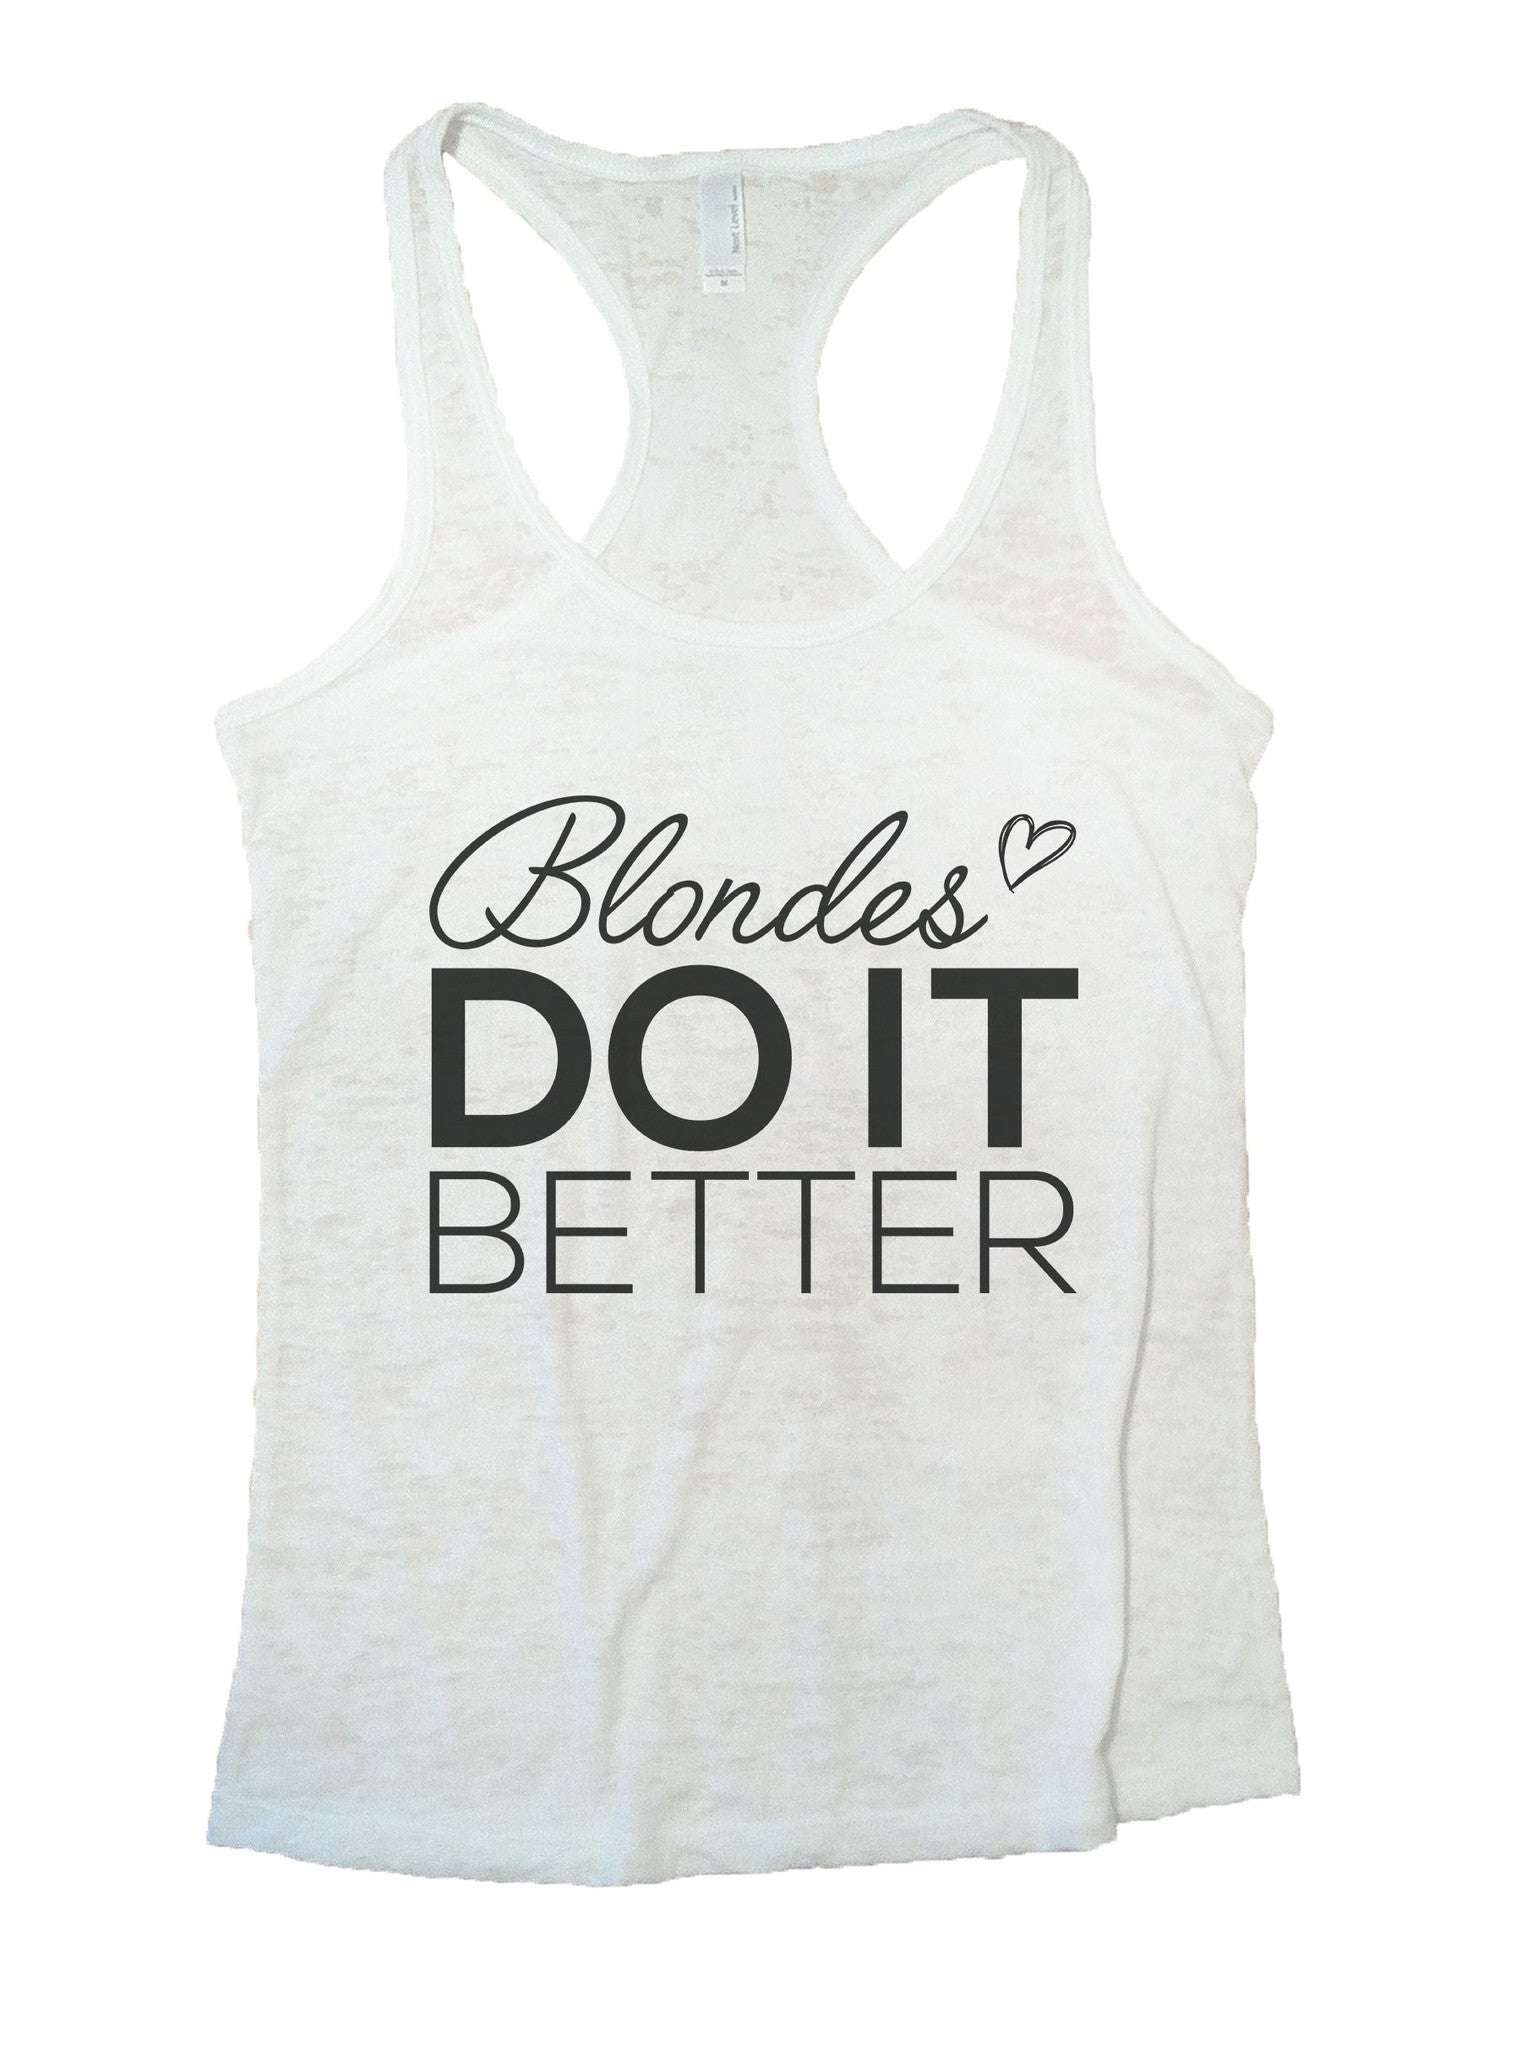 Blondes Do It Better Burnout Tank Top By BurnoutTankTops.com - 1030 - Funny Shirts Tank Tops Burnouts and Triblends  - 6